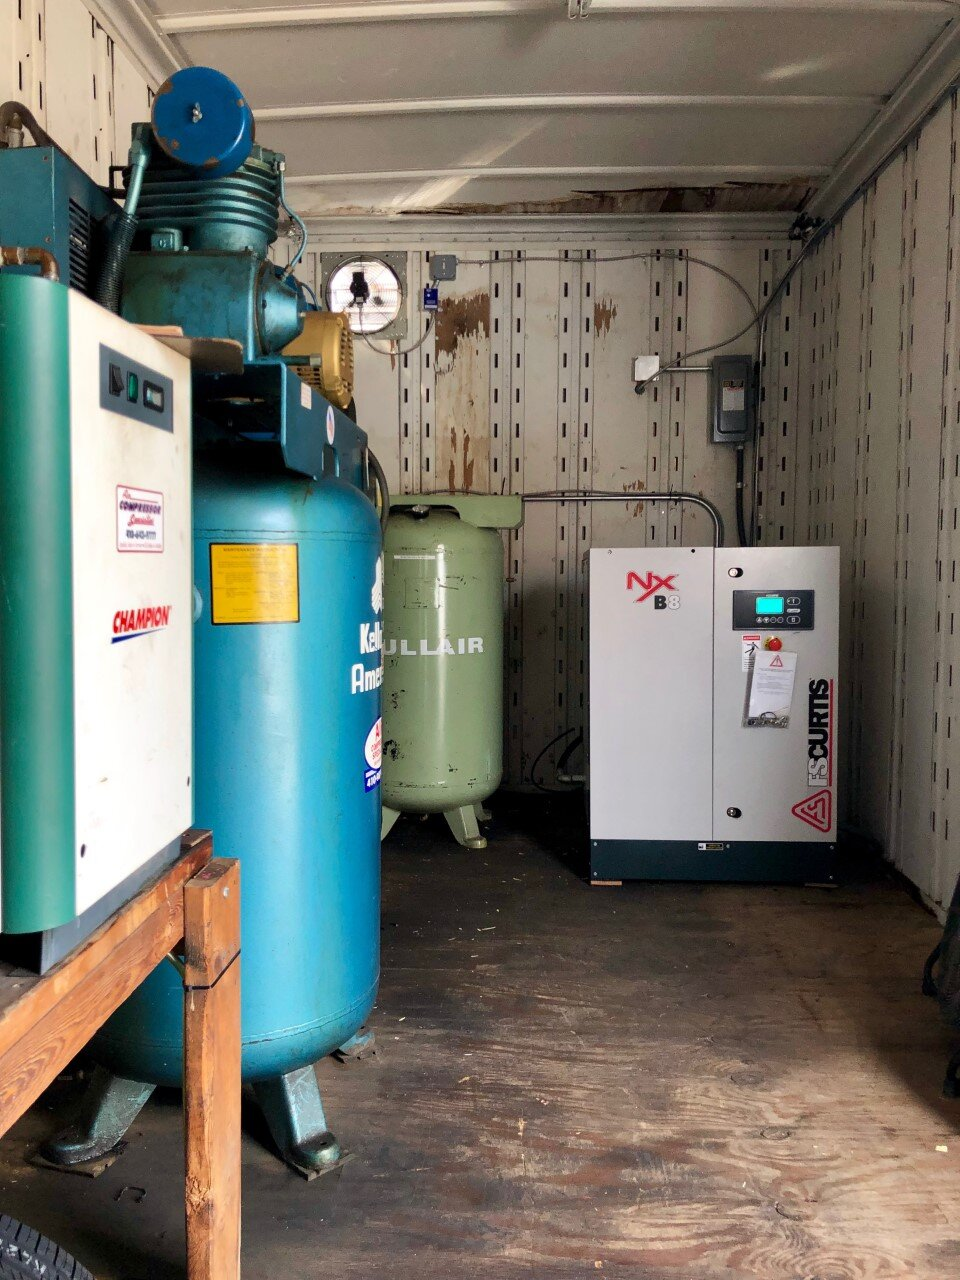 New 10 HP FS-Curtis Nx rotary screw compressor installed along with a Kellogg reciprocating compressor and a Champion refrigerated air dryer at an automotive shop